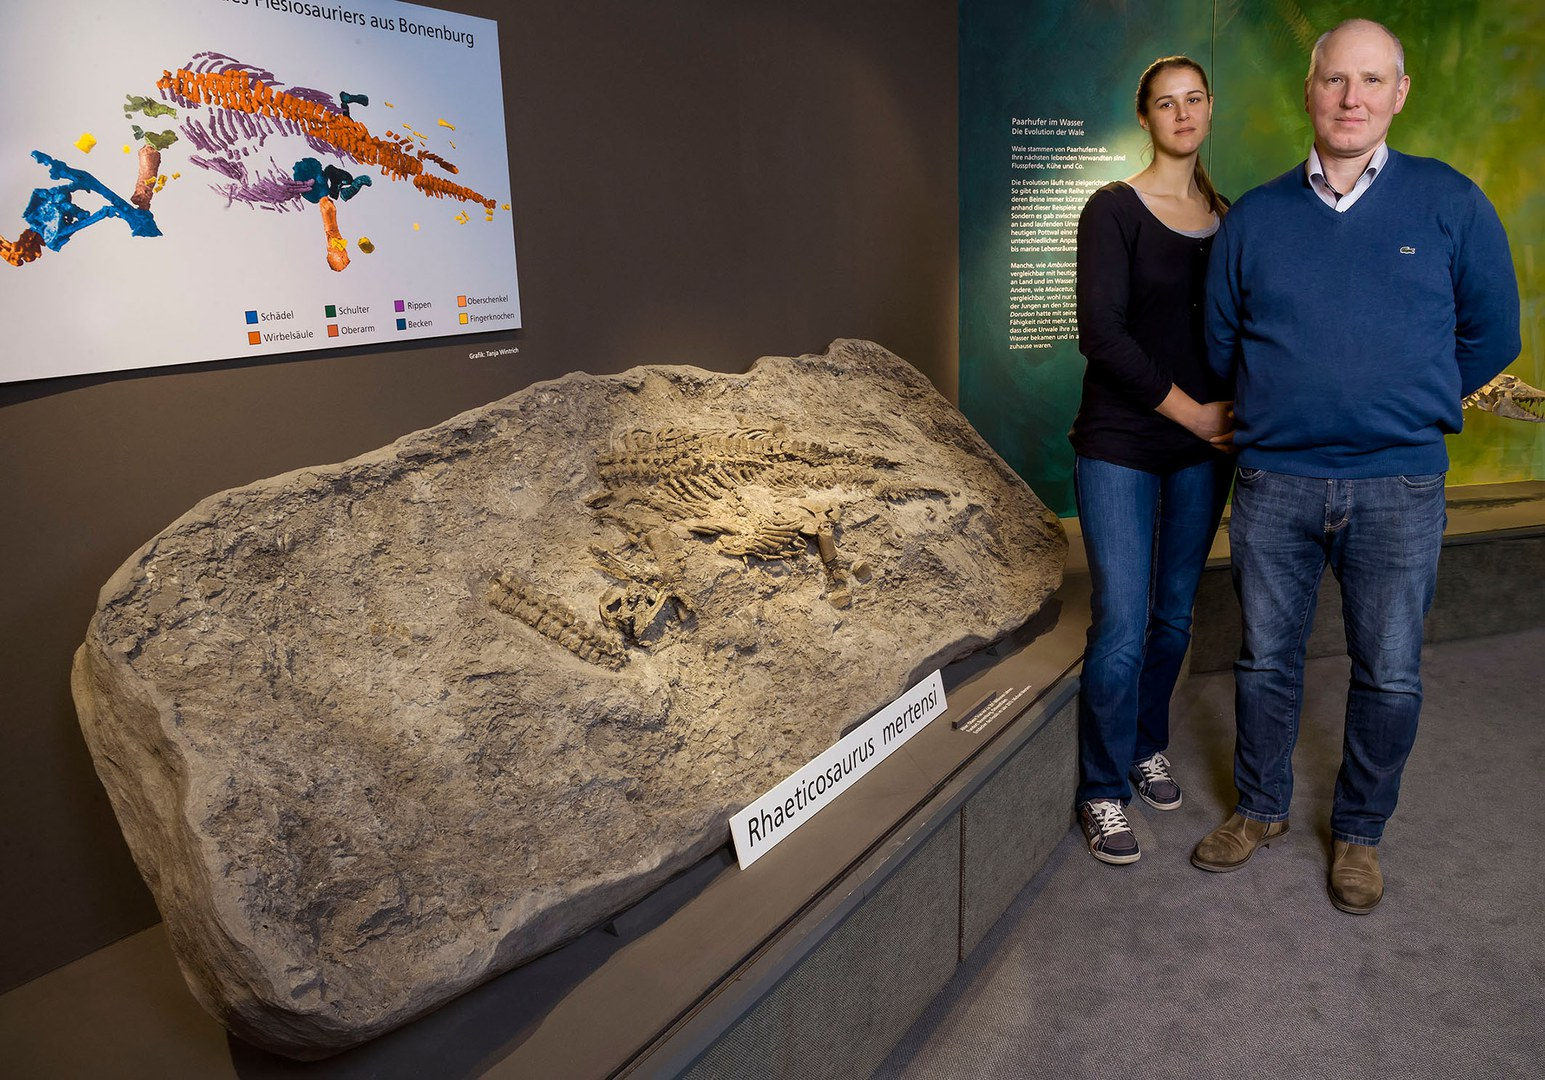 Paleontologists Tanja Wintrich from the University of Bonn and discoverer Michael Mertens